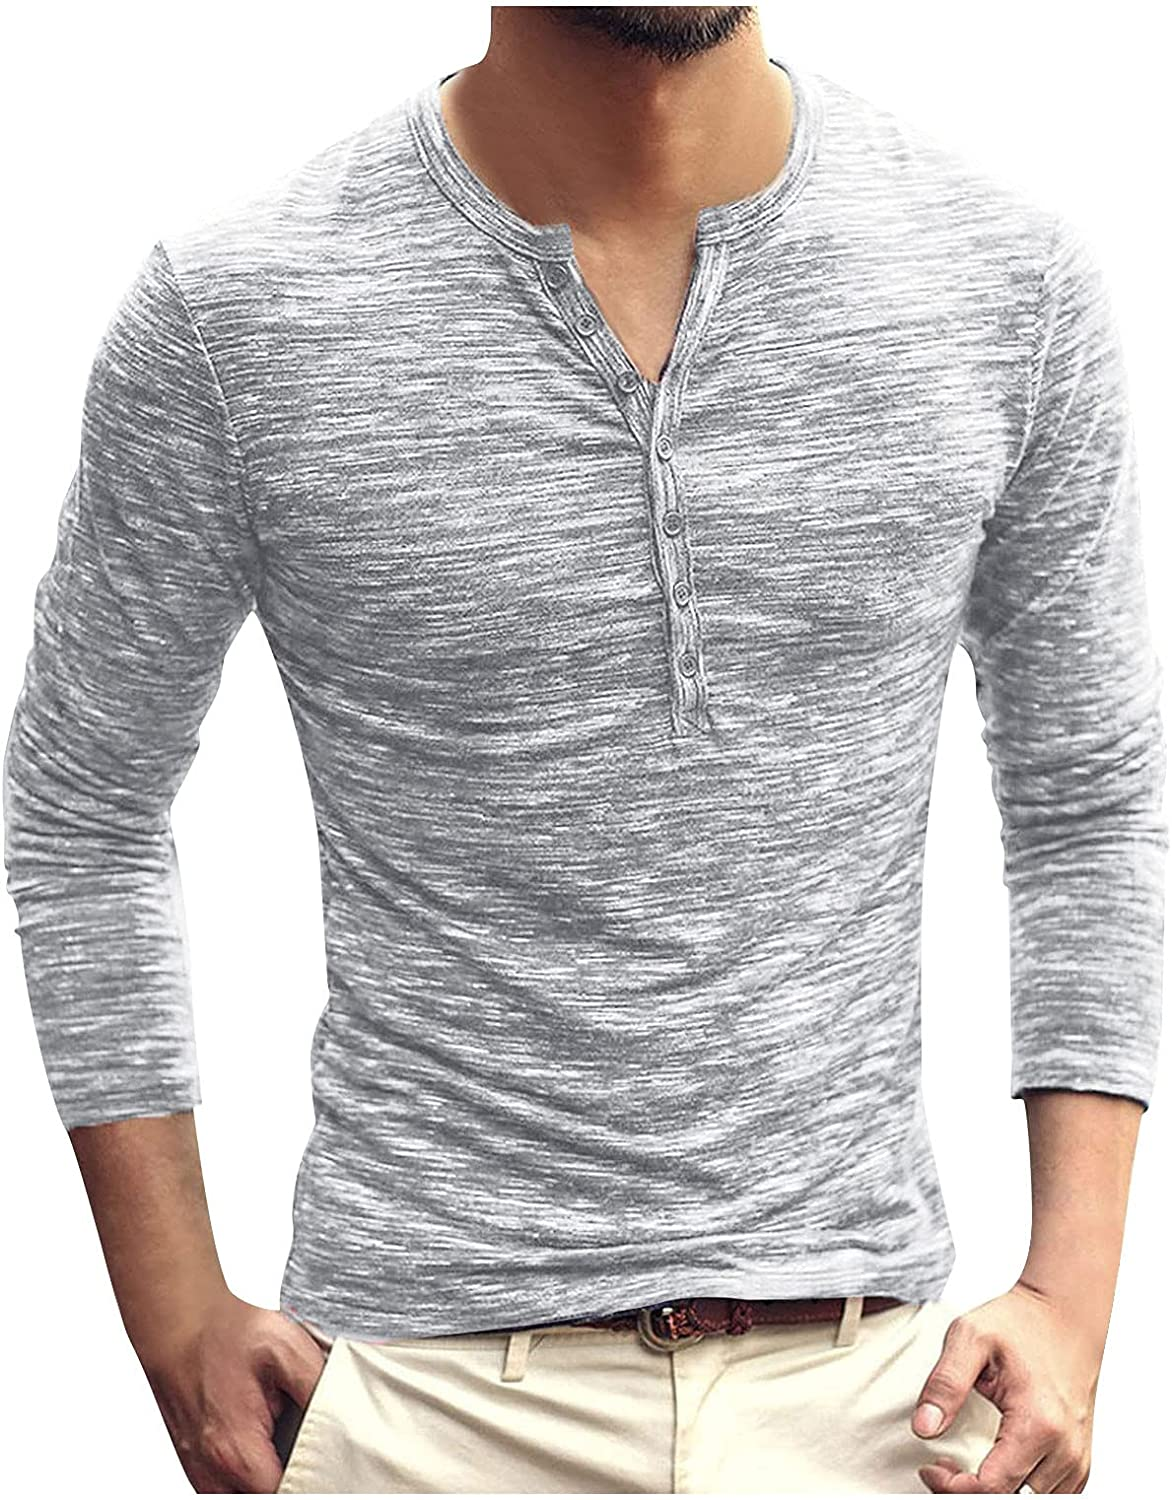 Mens Slim-fit Henlye Shirt Long Sleeve Solid O Neck Button Down Sport Fitness Tee Outdoor Hiking Fishing Refresh Tees